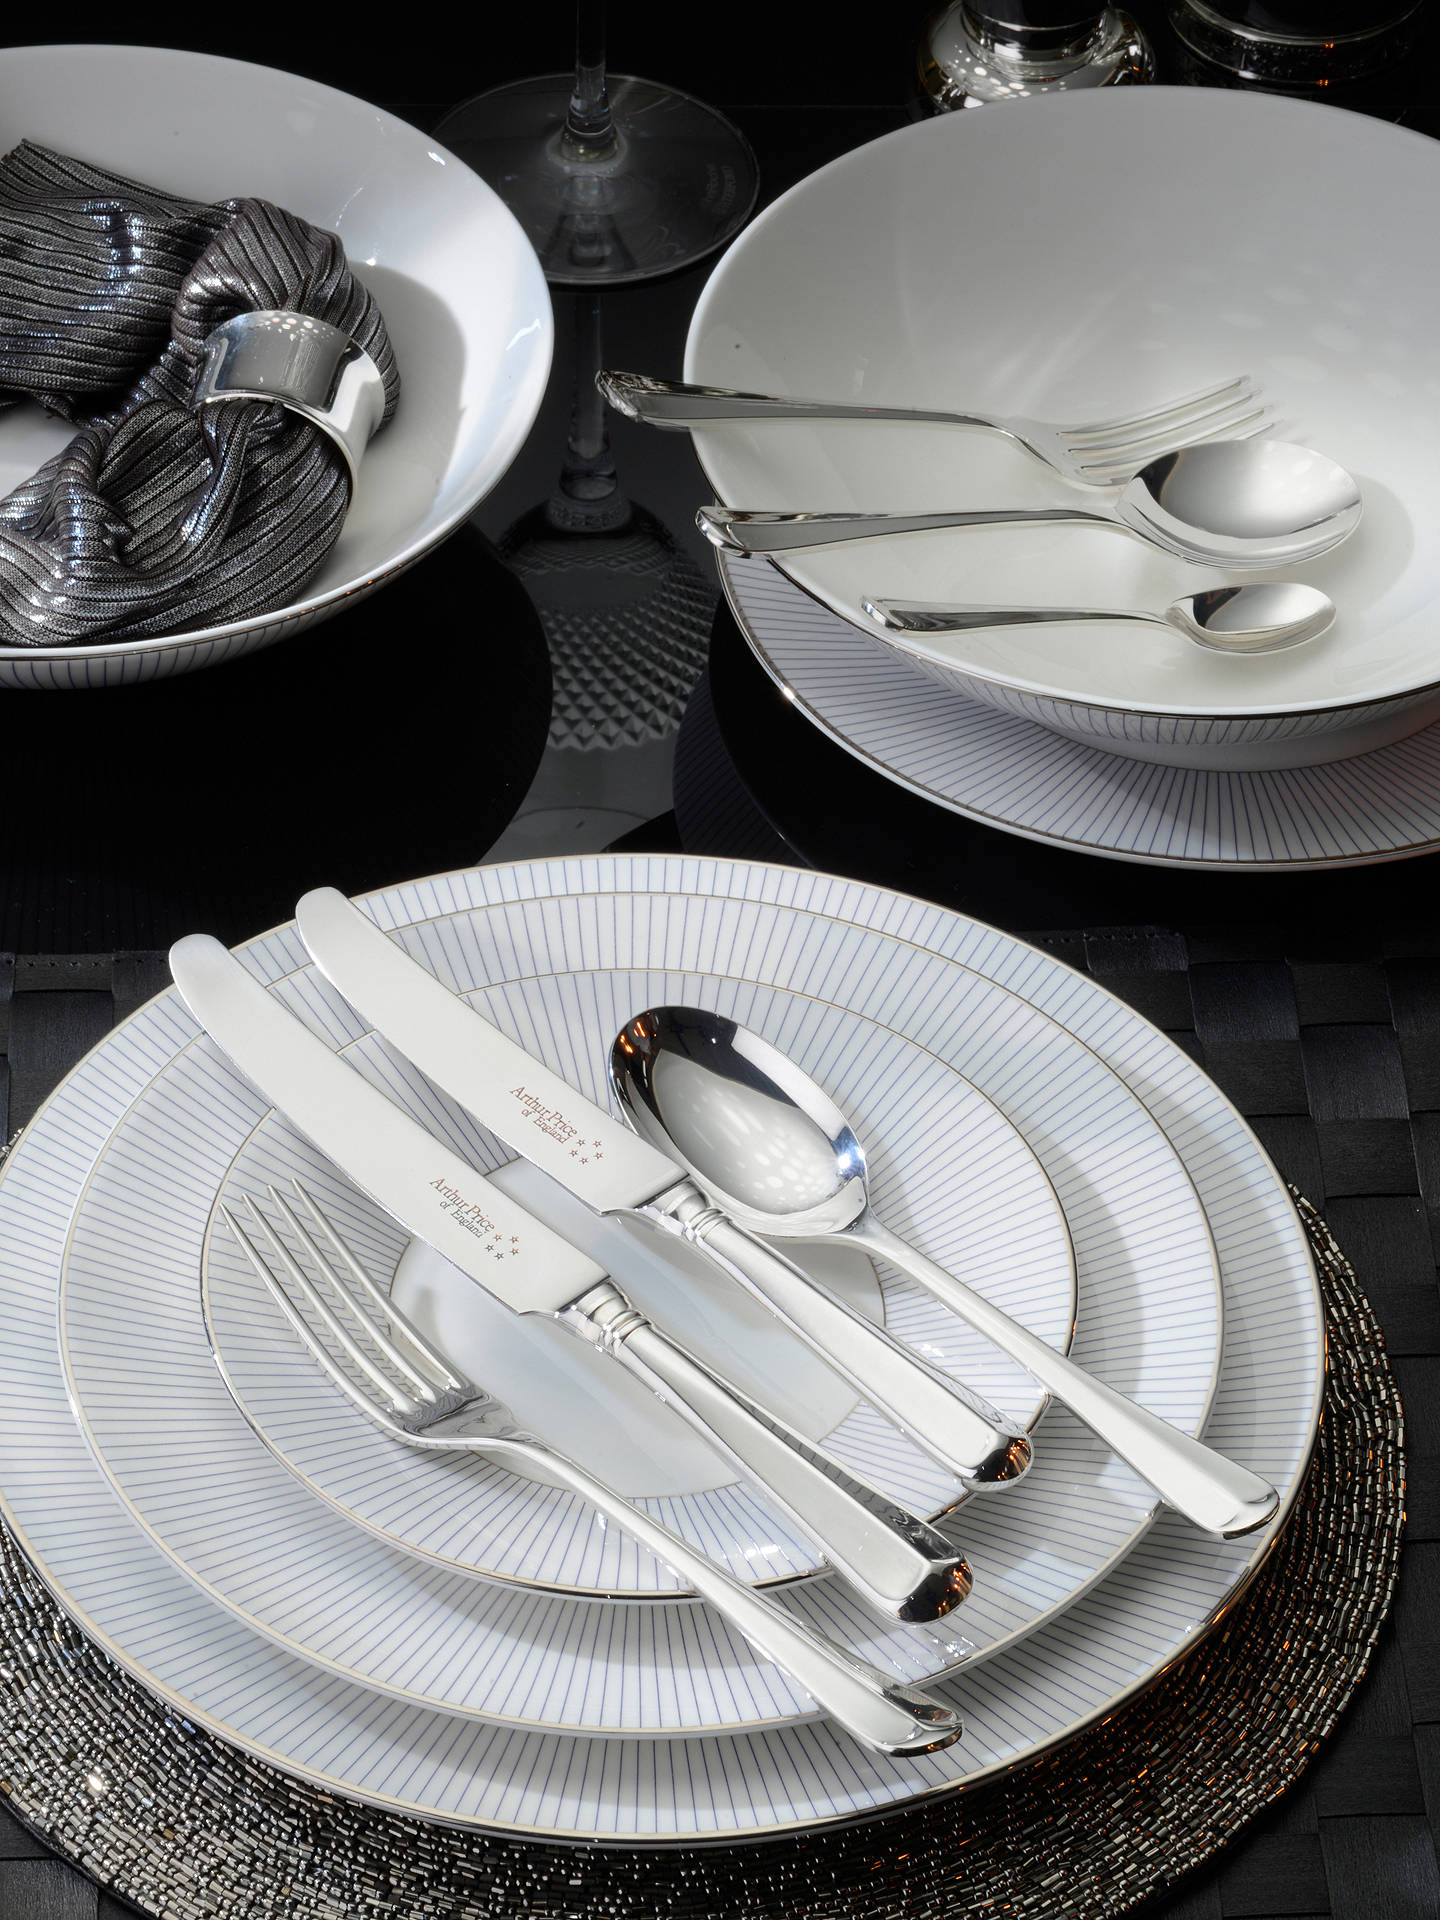 Buy Arthur Price Rattail Cutlery Canteen, Sovereign Silver Plated, 60 Piece Online at johnlewis.com